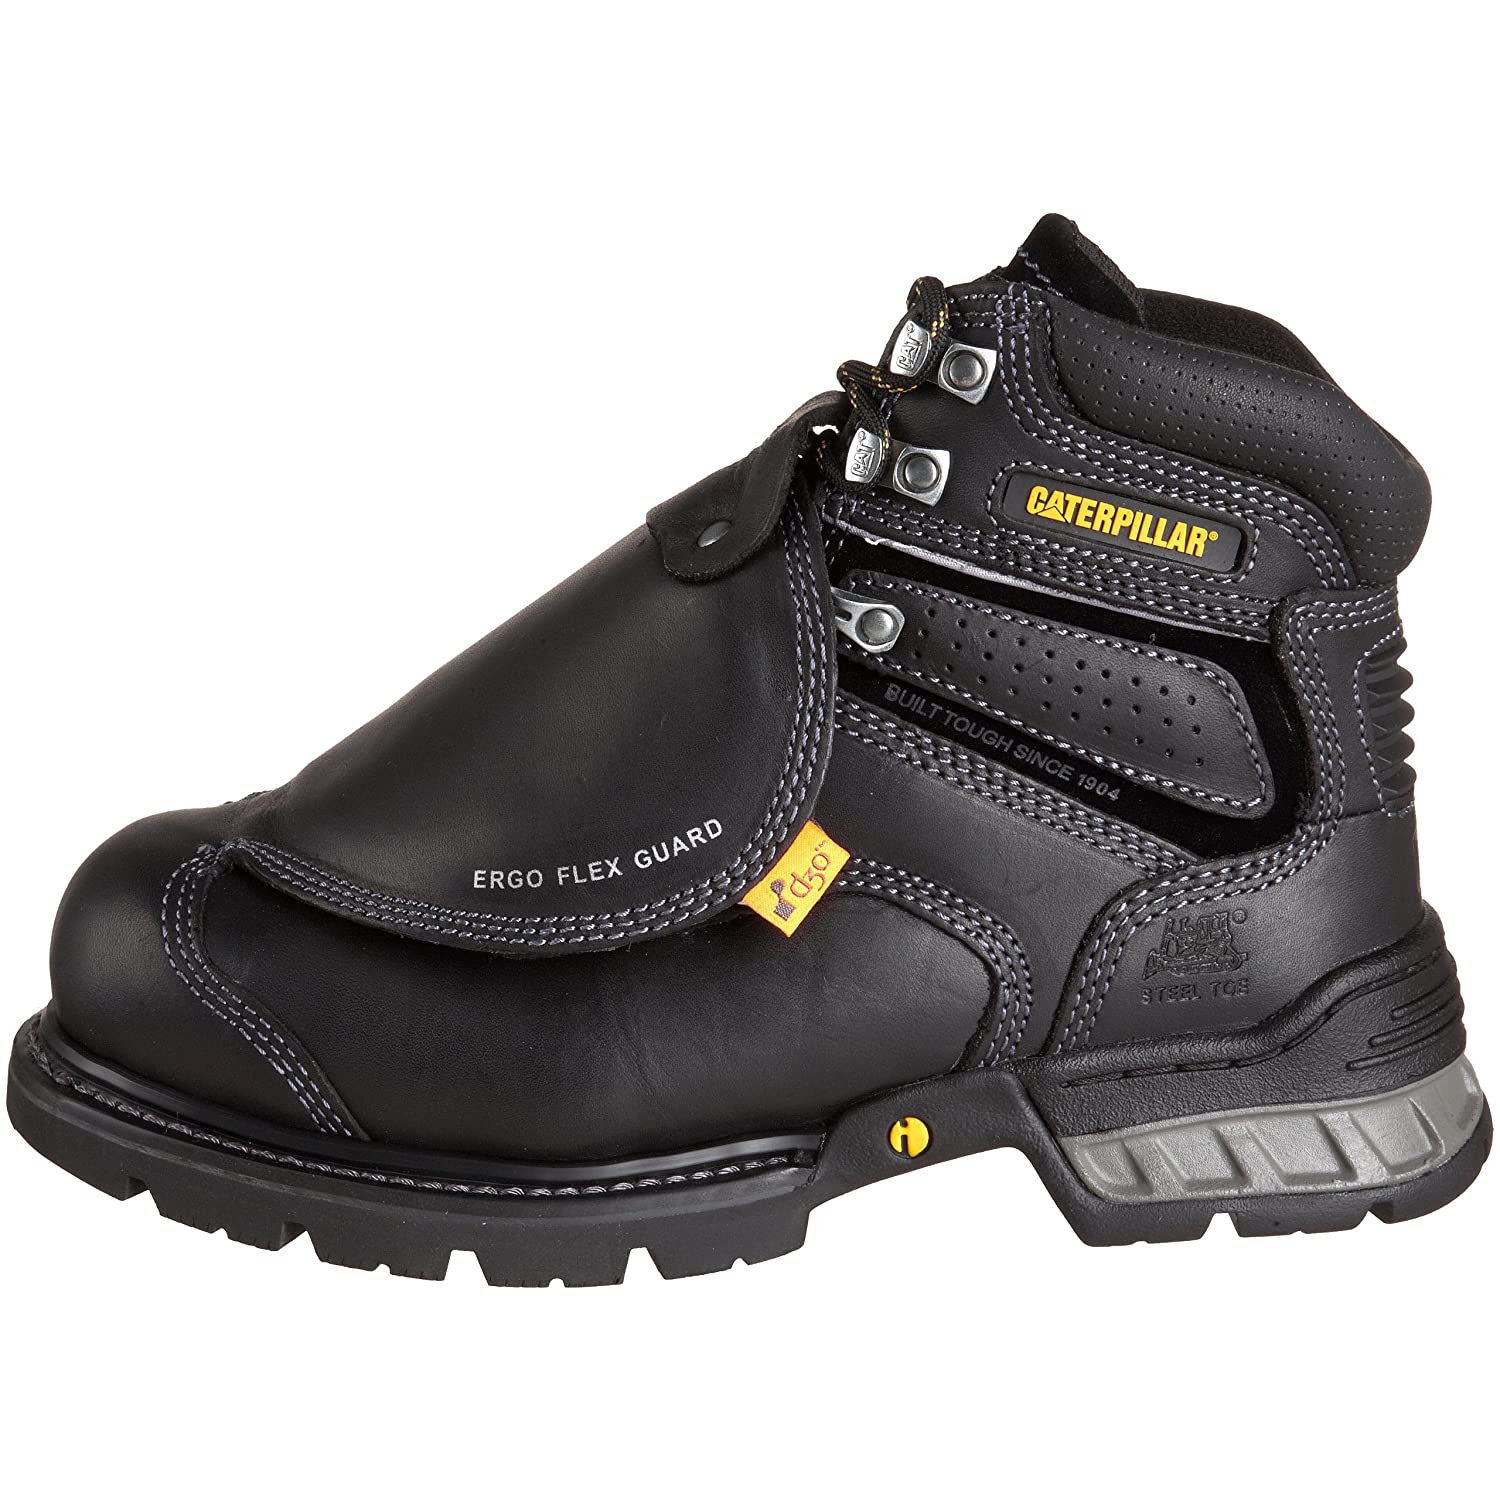 4dacee31ad4 Amazon.com  Caterpillar Men s Ergo Flexguard Boot  Shoes